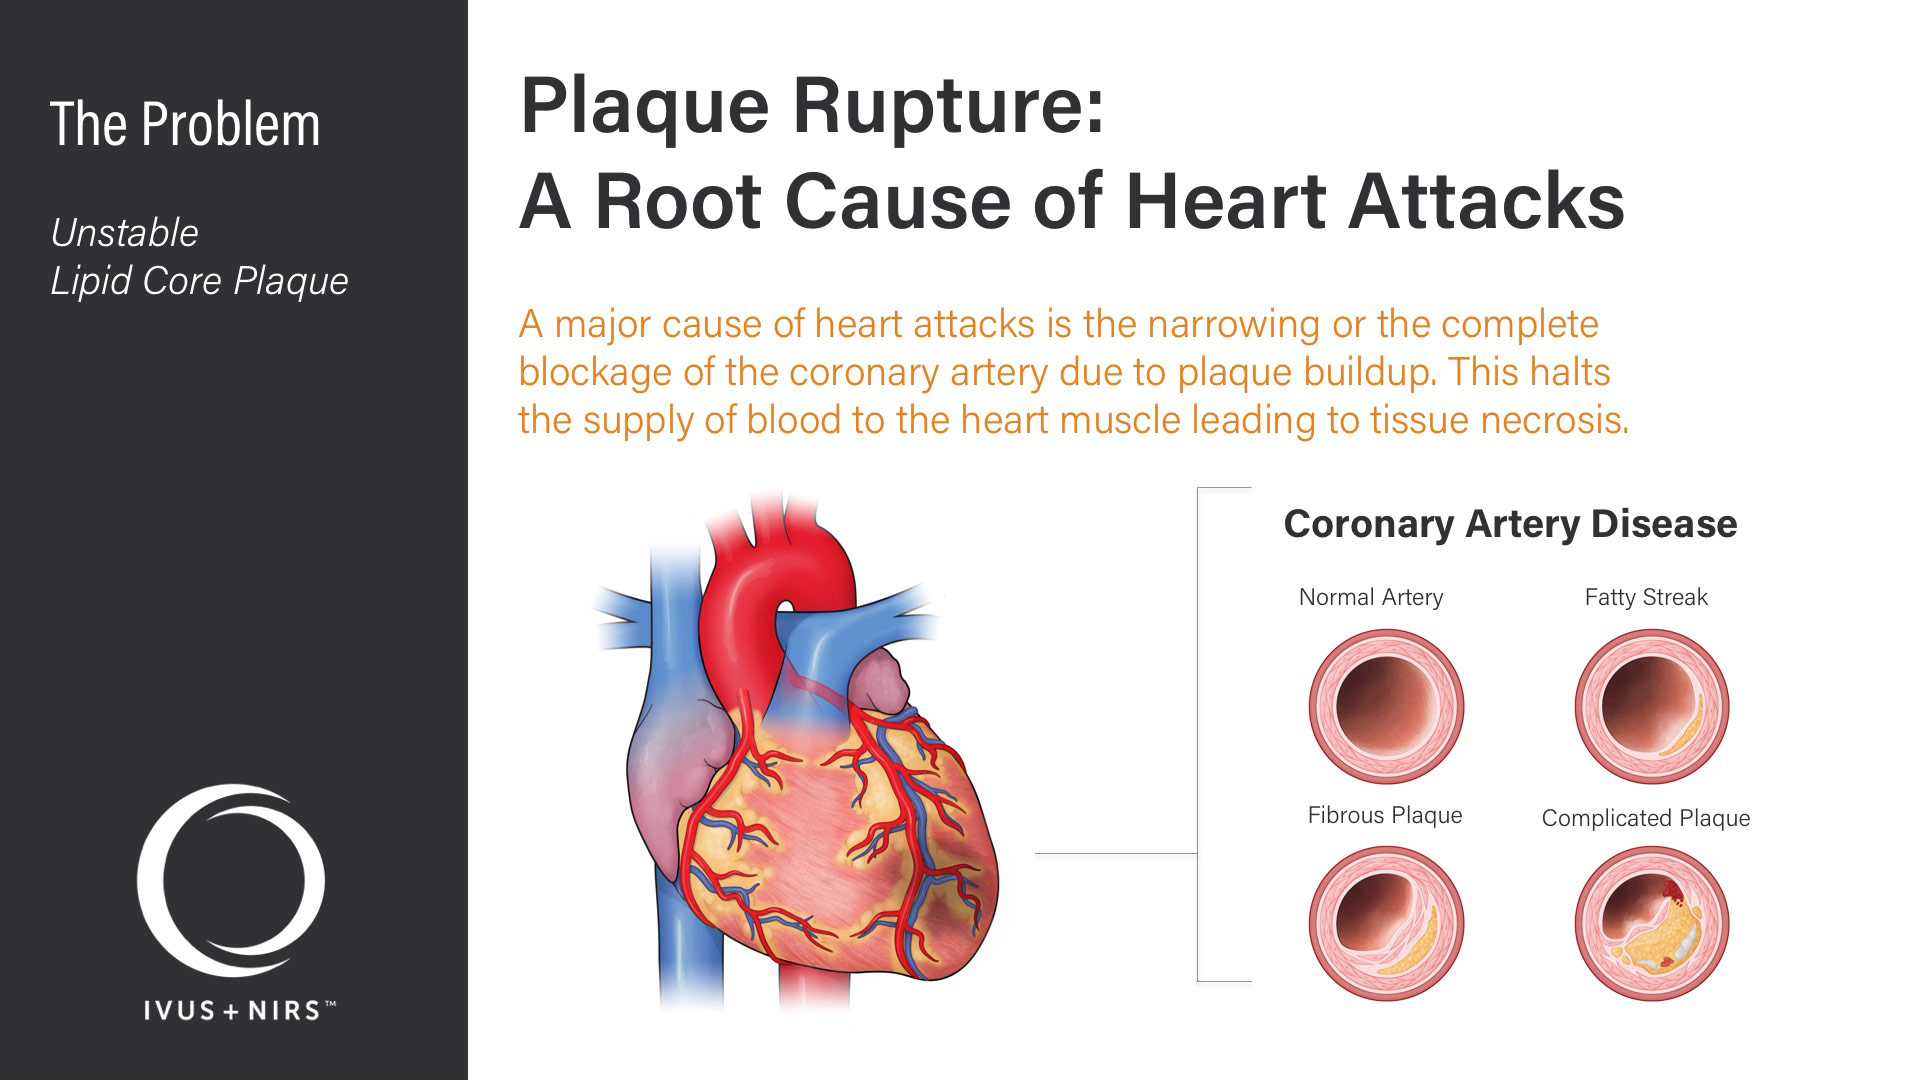 Infraredx Corporate Deck - Problem - Plaque Rupture: A Root Cause of Heart Attacks - Medical Illustrations of Heart & Coronary Artery Disease